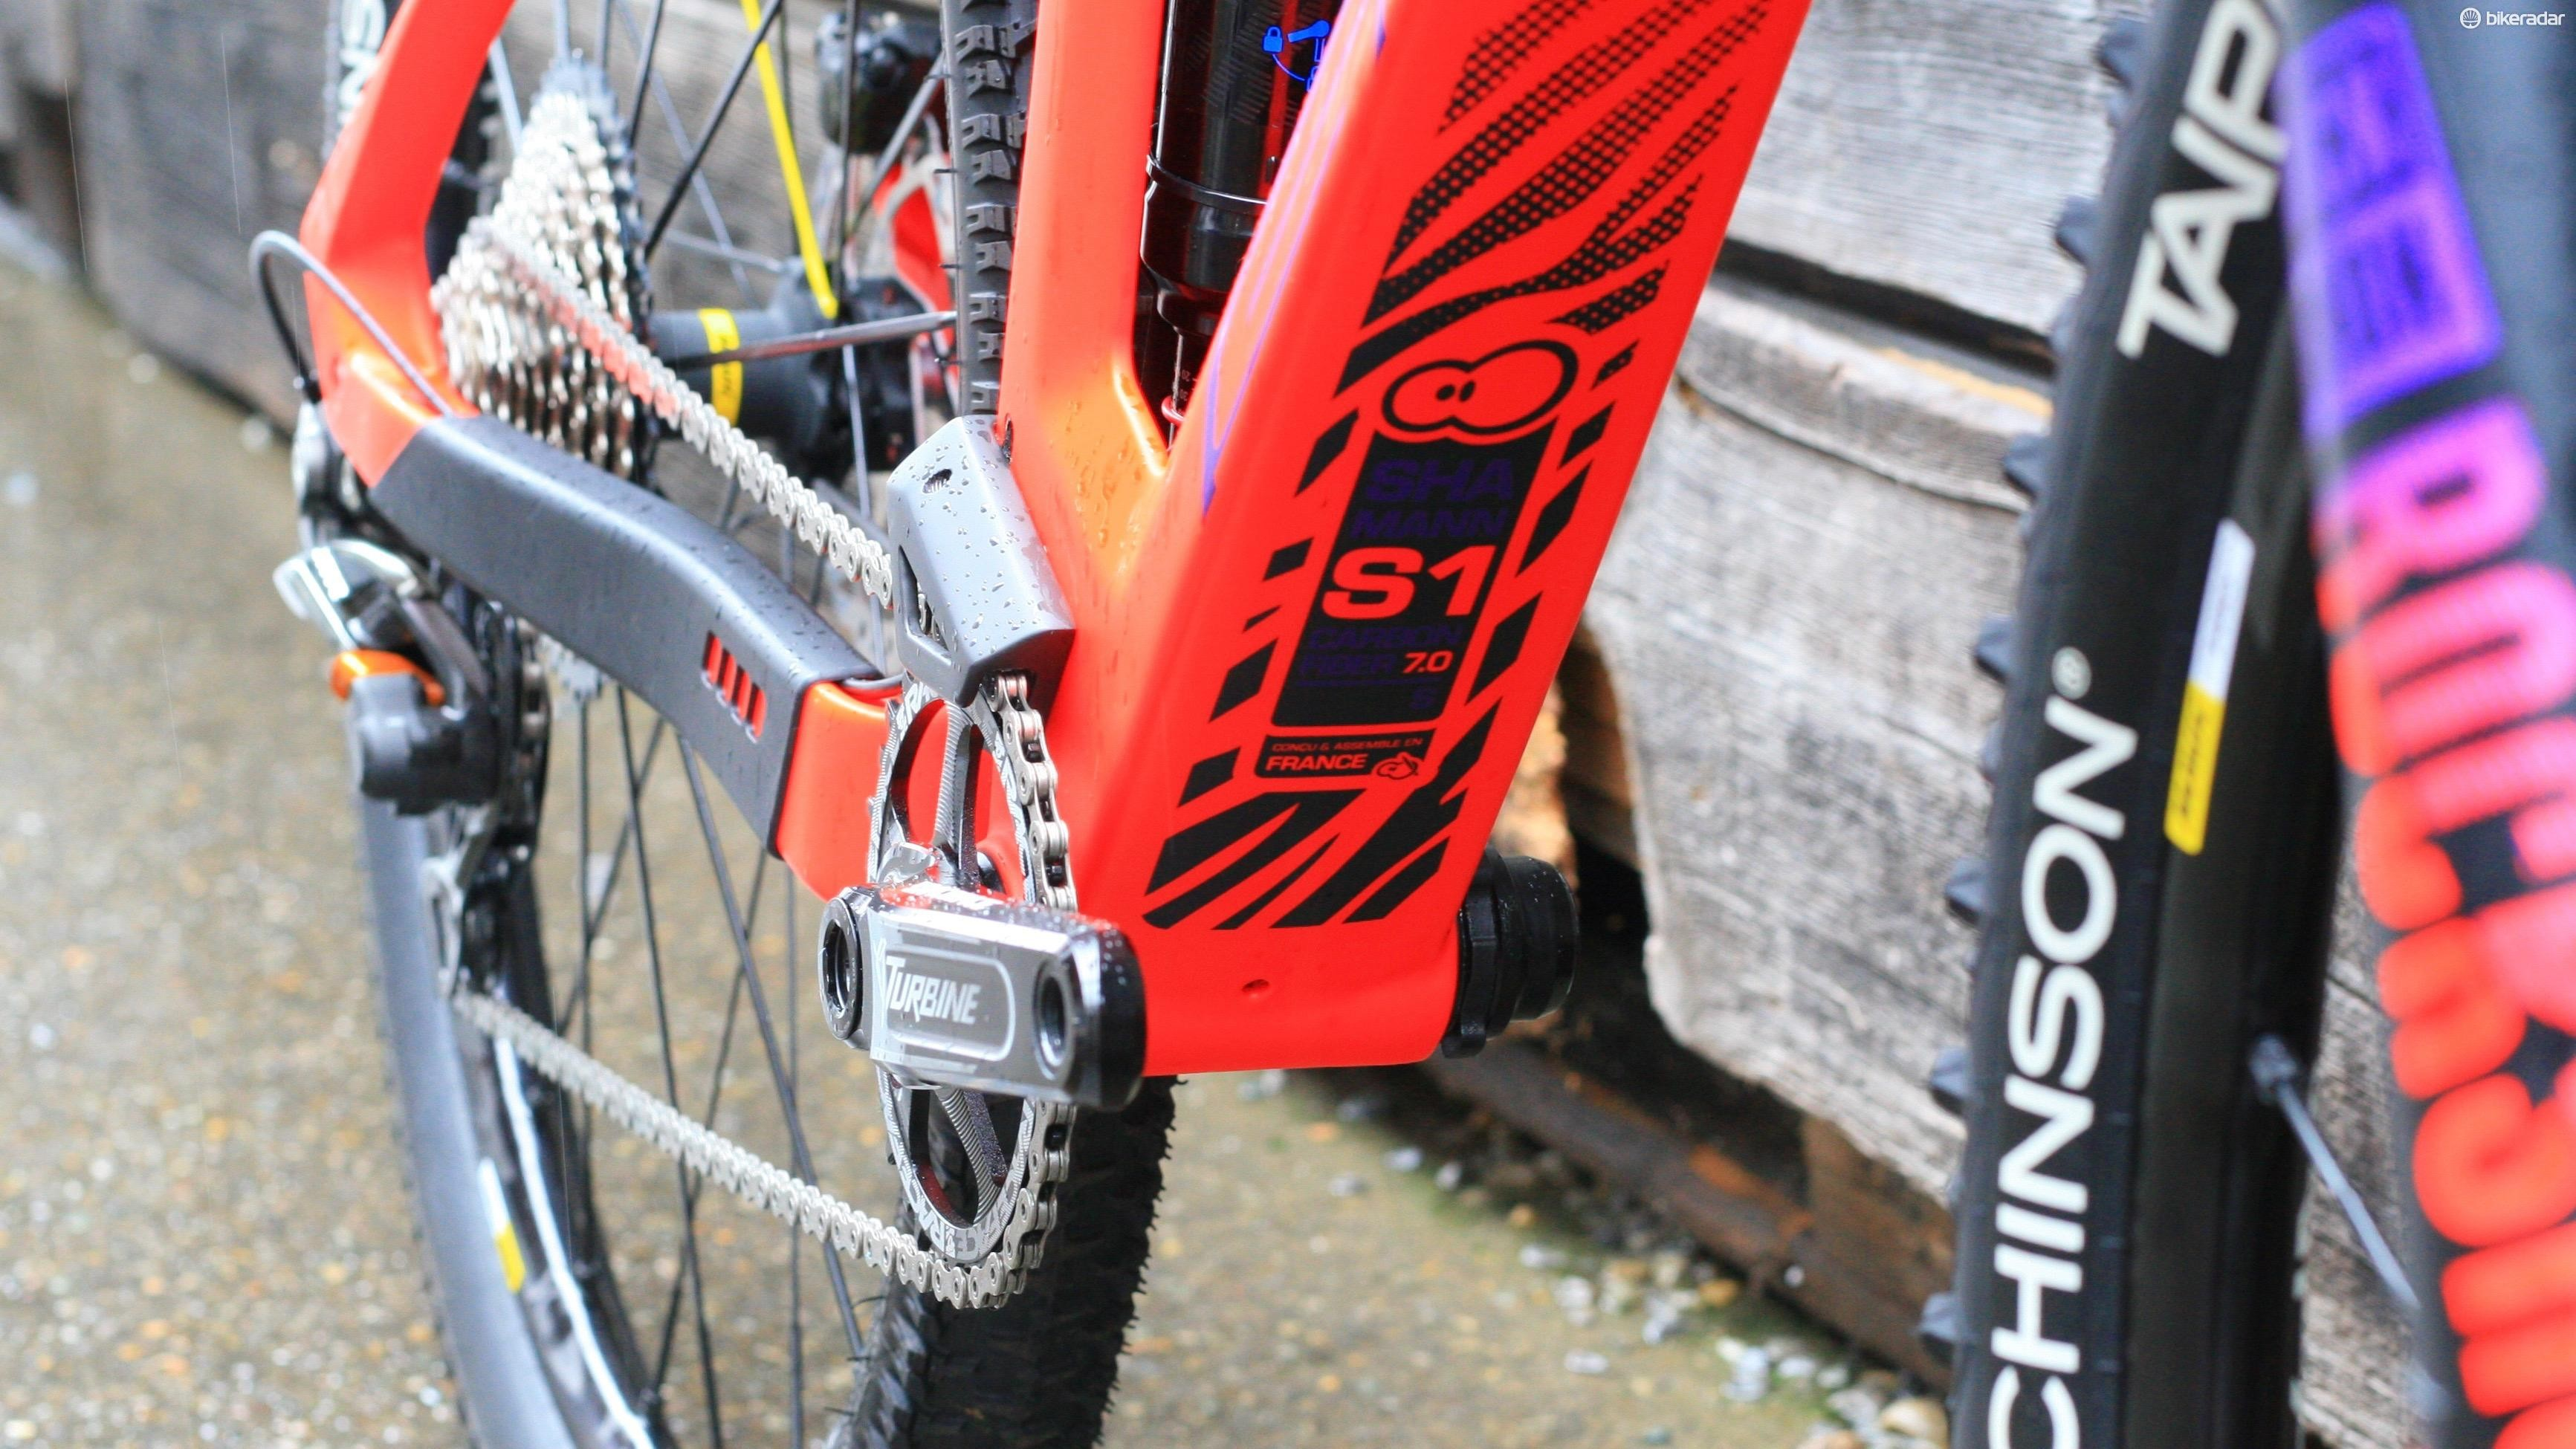 A beefy down tube should add plenty of frame stiffness. There's also Sunn's own chainguide